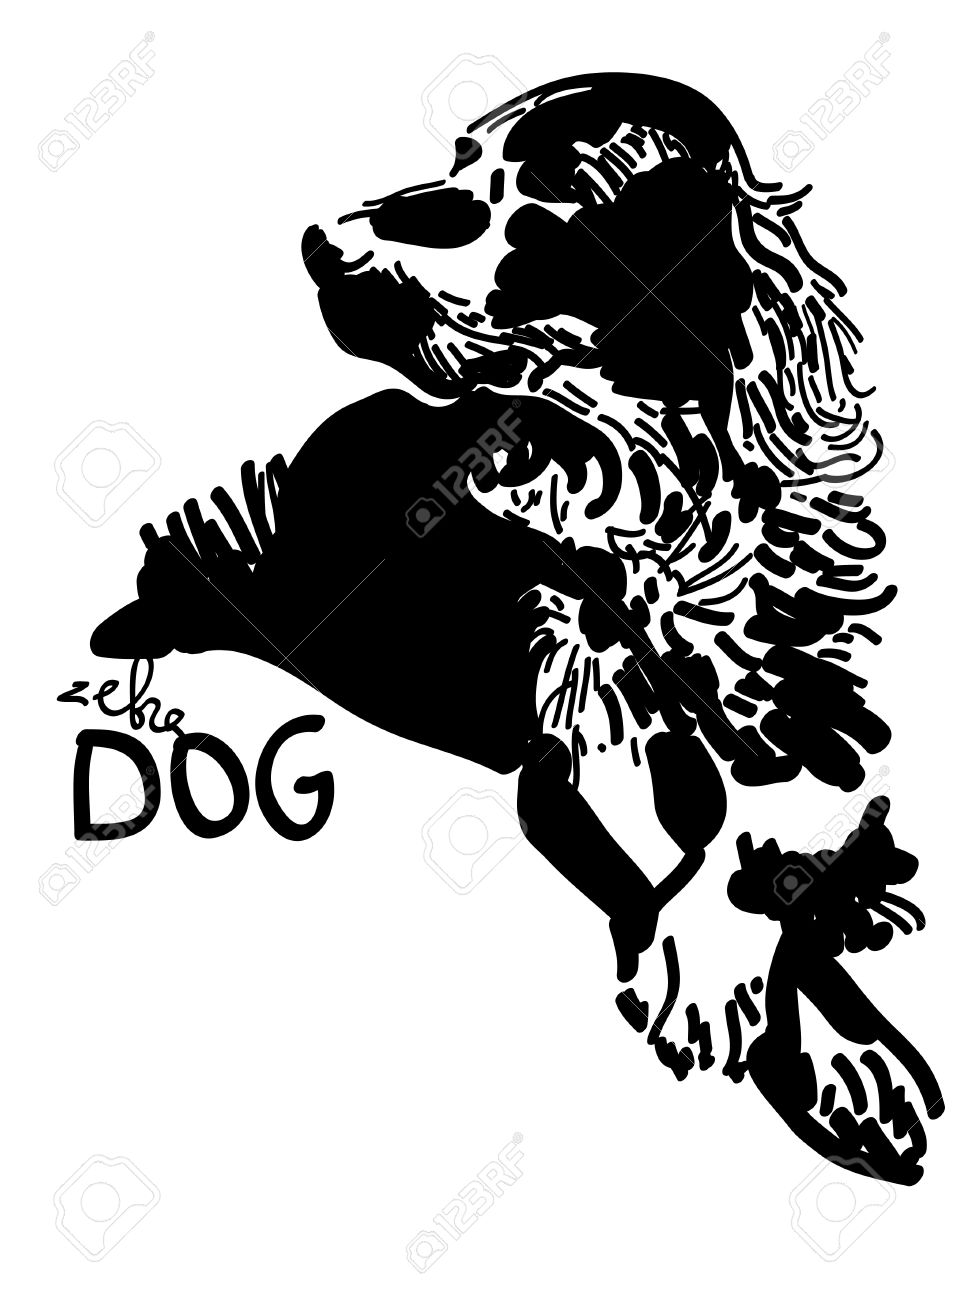 Irish Setter clipart #5, Download drawings